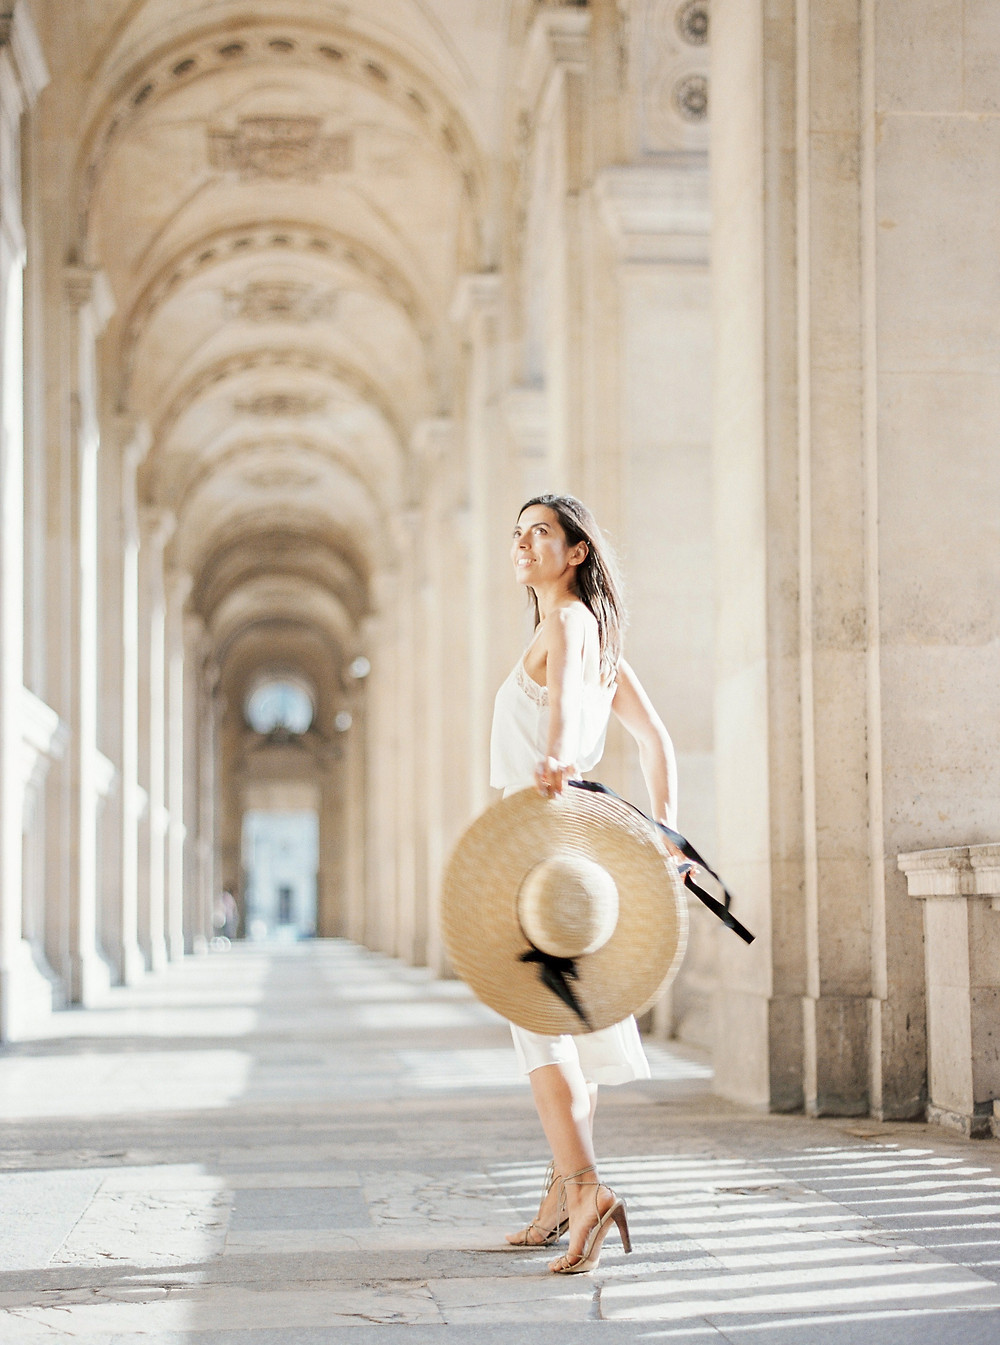 Girl with Mango hat in arch gallery of Louvre and total white outfit idea